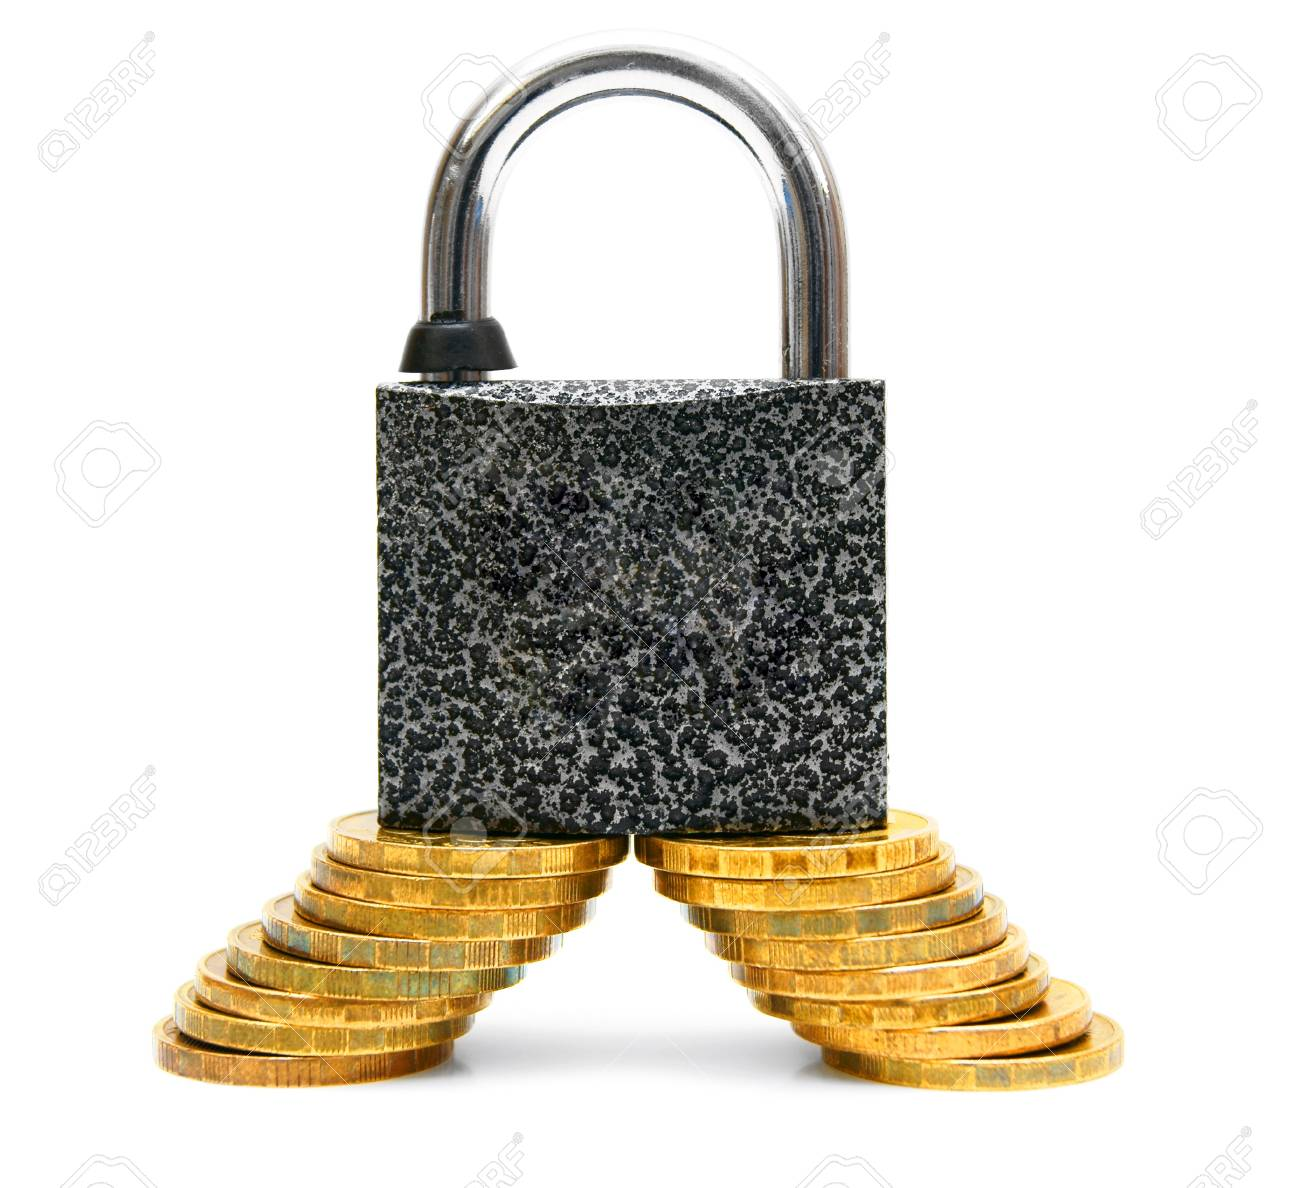 The lock and gold coins  On a white background Stock Photo - 13808161